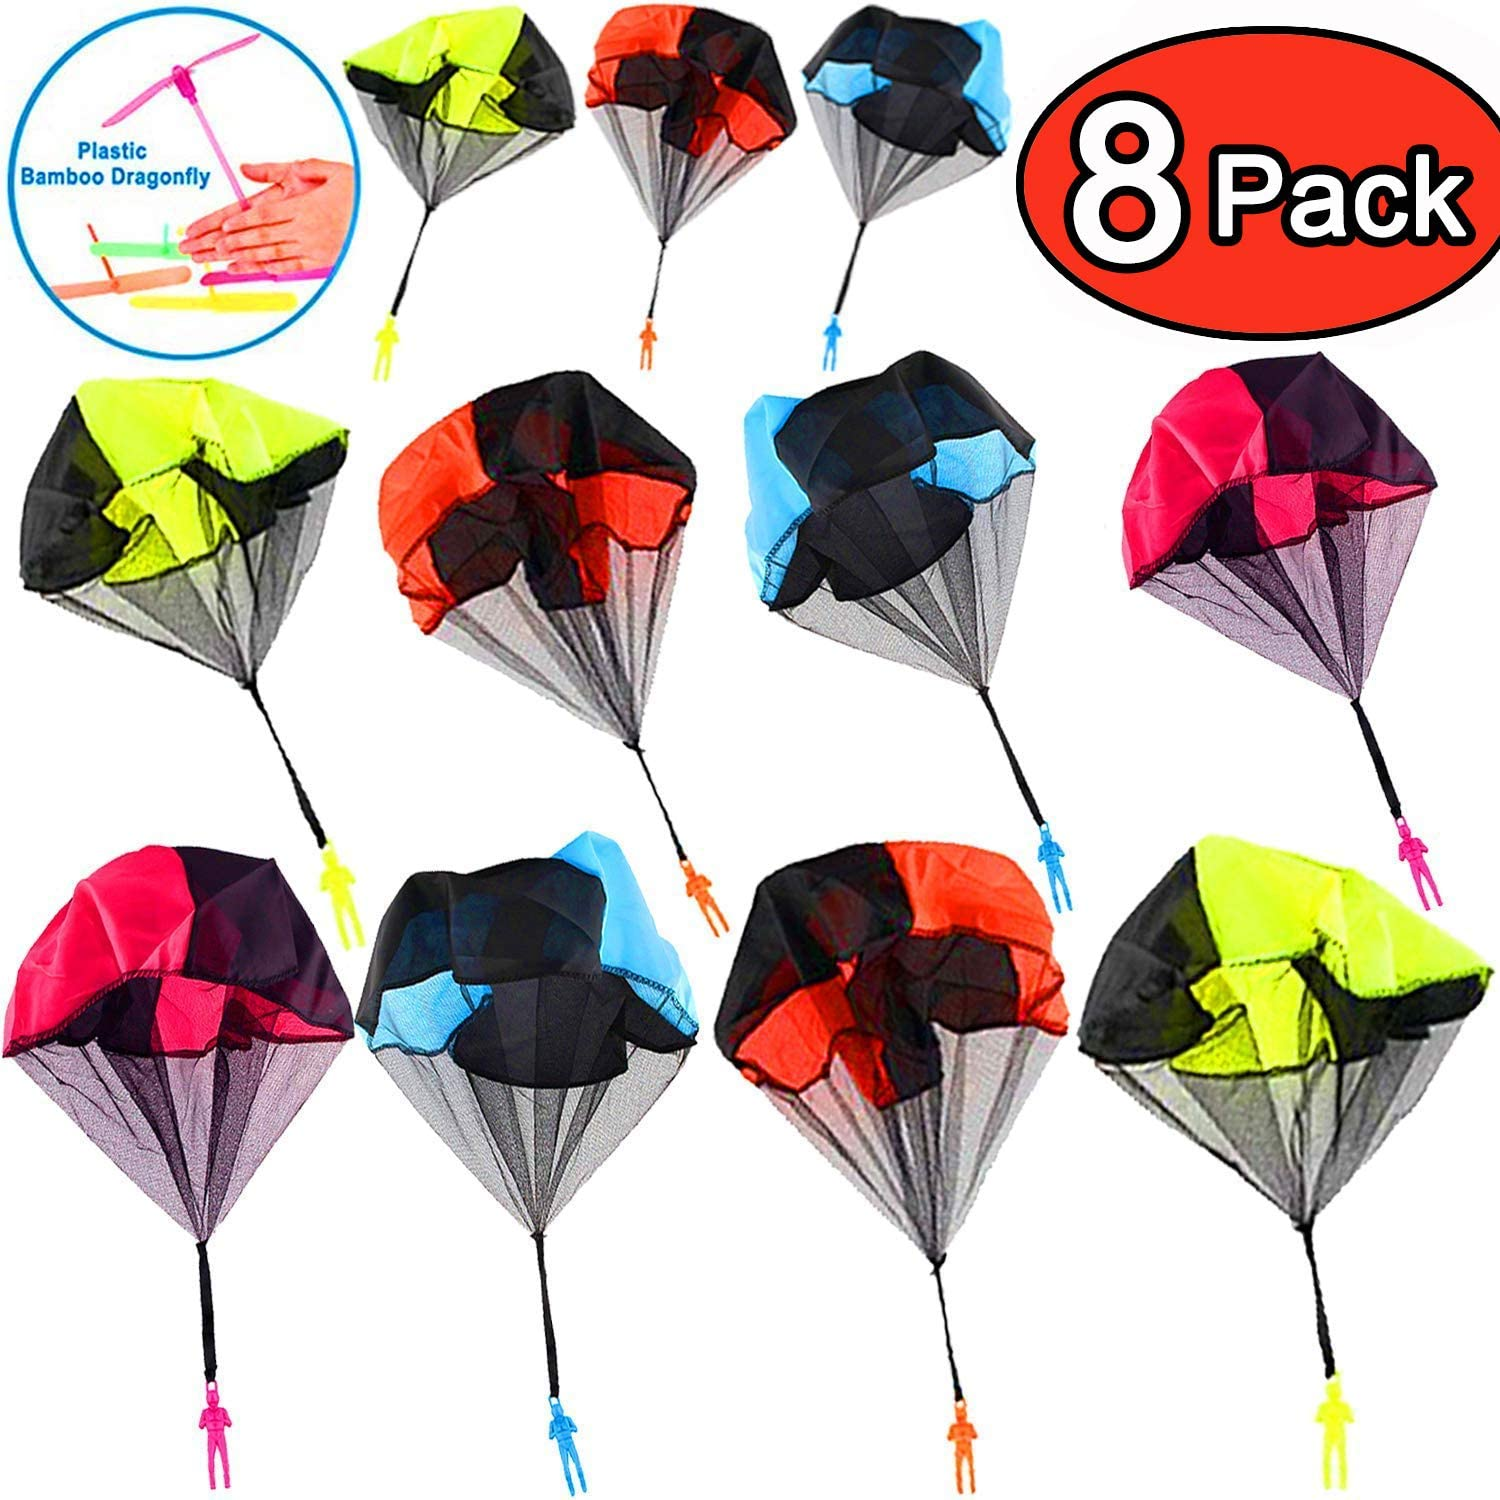 8 Pcs Parachute Tangle Free Throwing Parachute with Launcher Flying Toys Soldier Skydiver Hand Throw Sports /& Outdoor Play Toys for Kids Gifts Party Favor Parachute Toys 8 Pcs Parachute Army Men